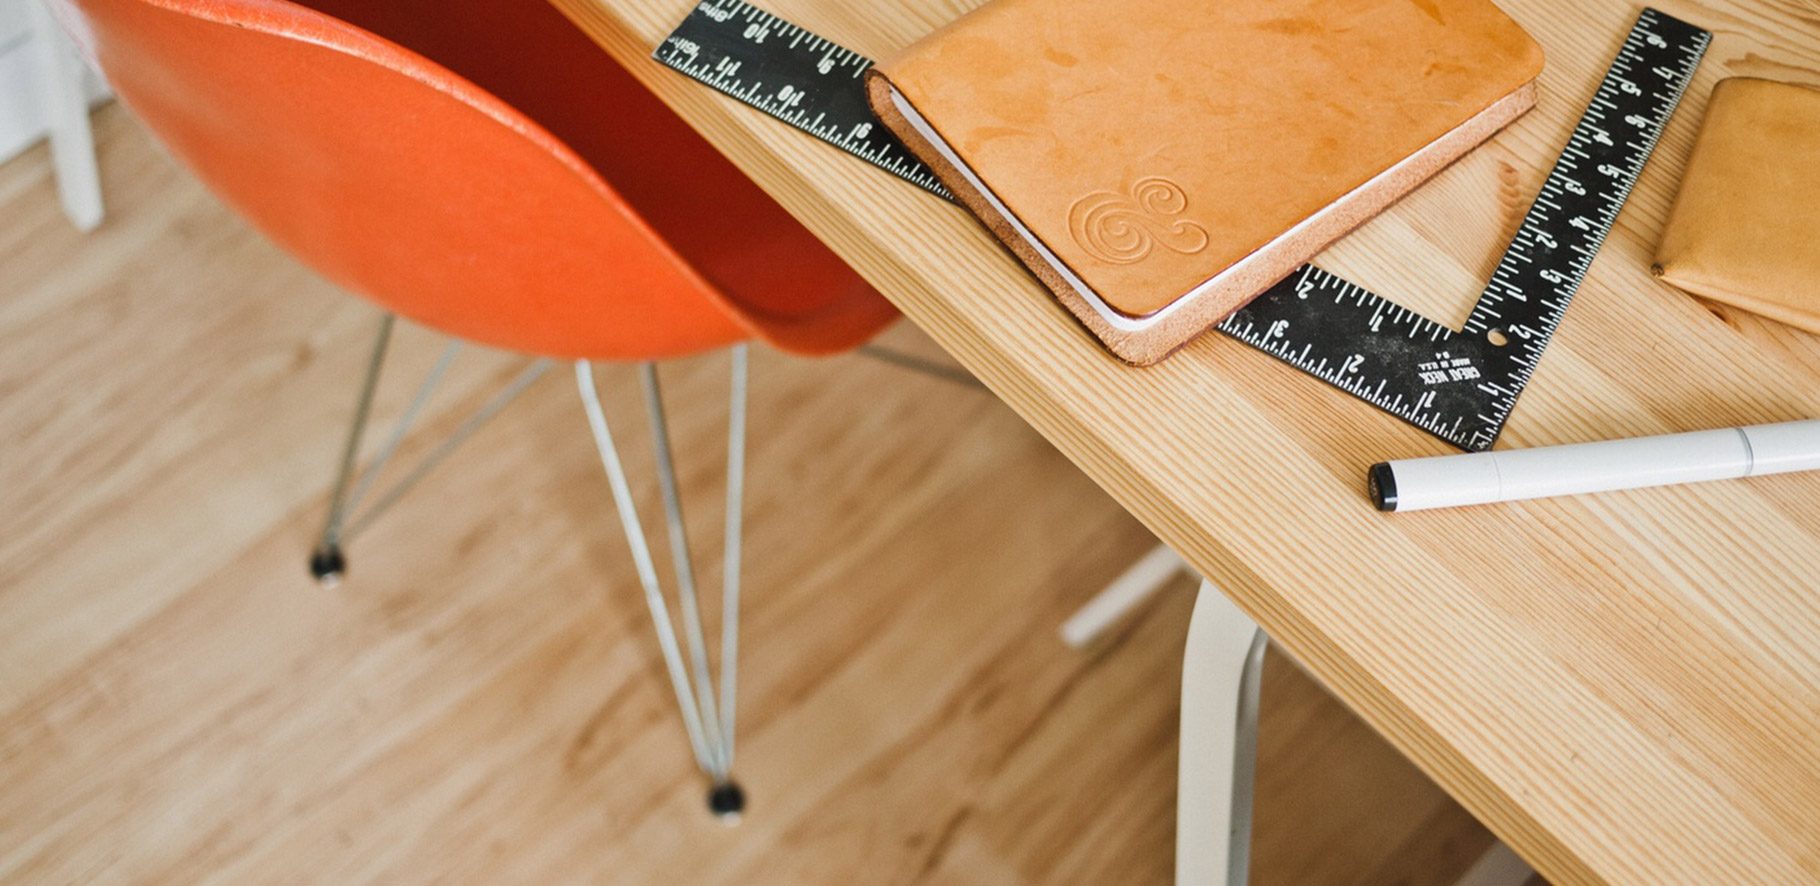 diary sitting on a table along with an empty chair